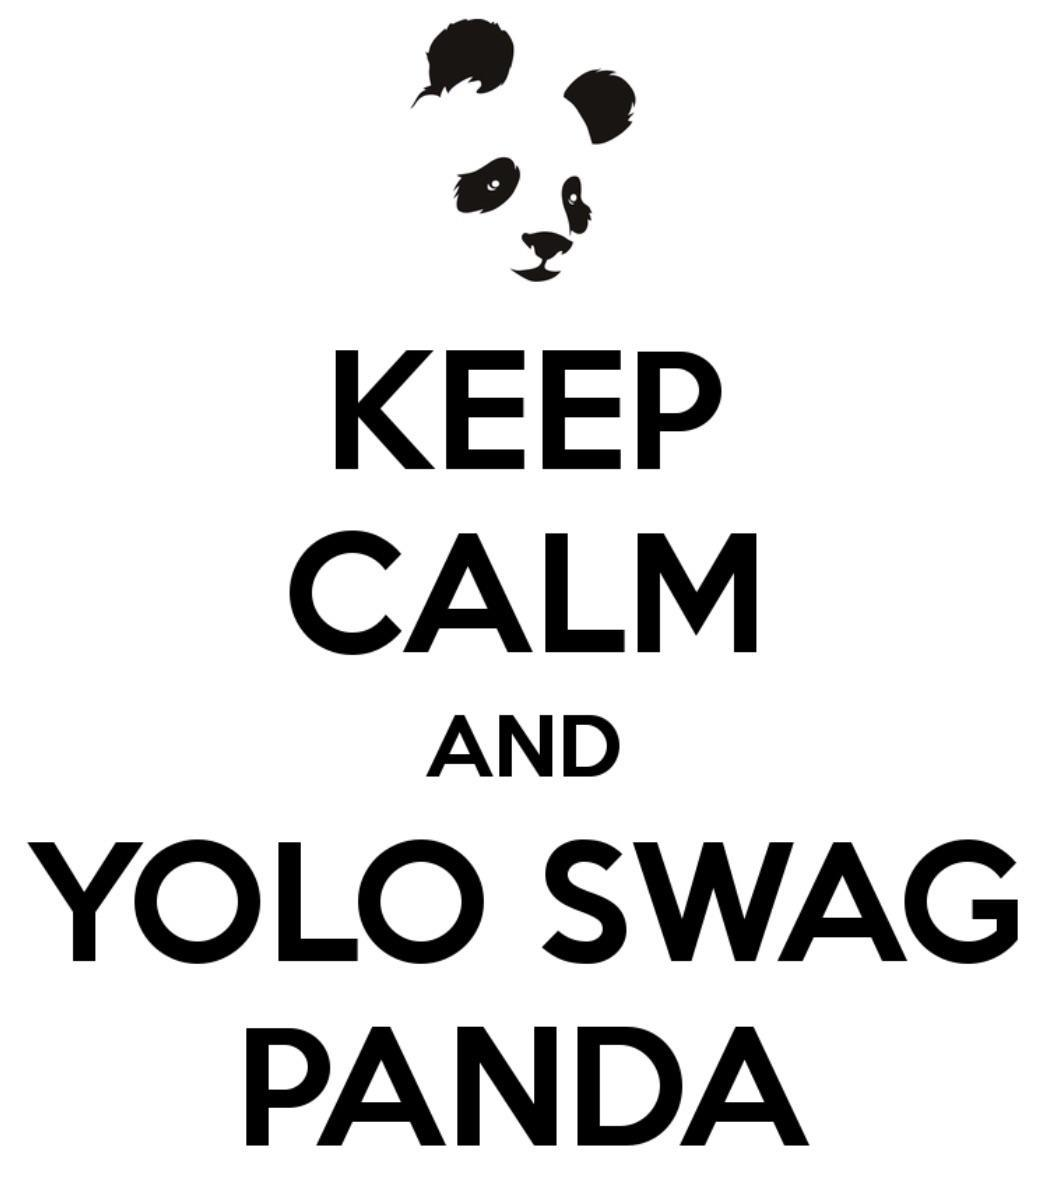 Keep calm and YOLO swag panda